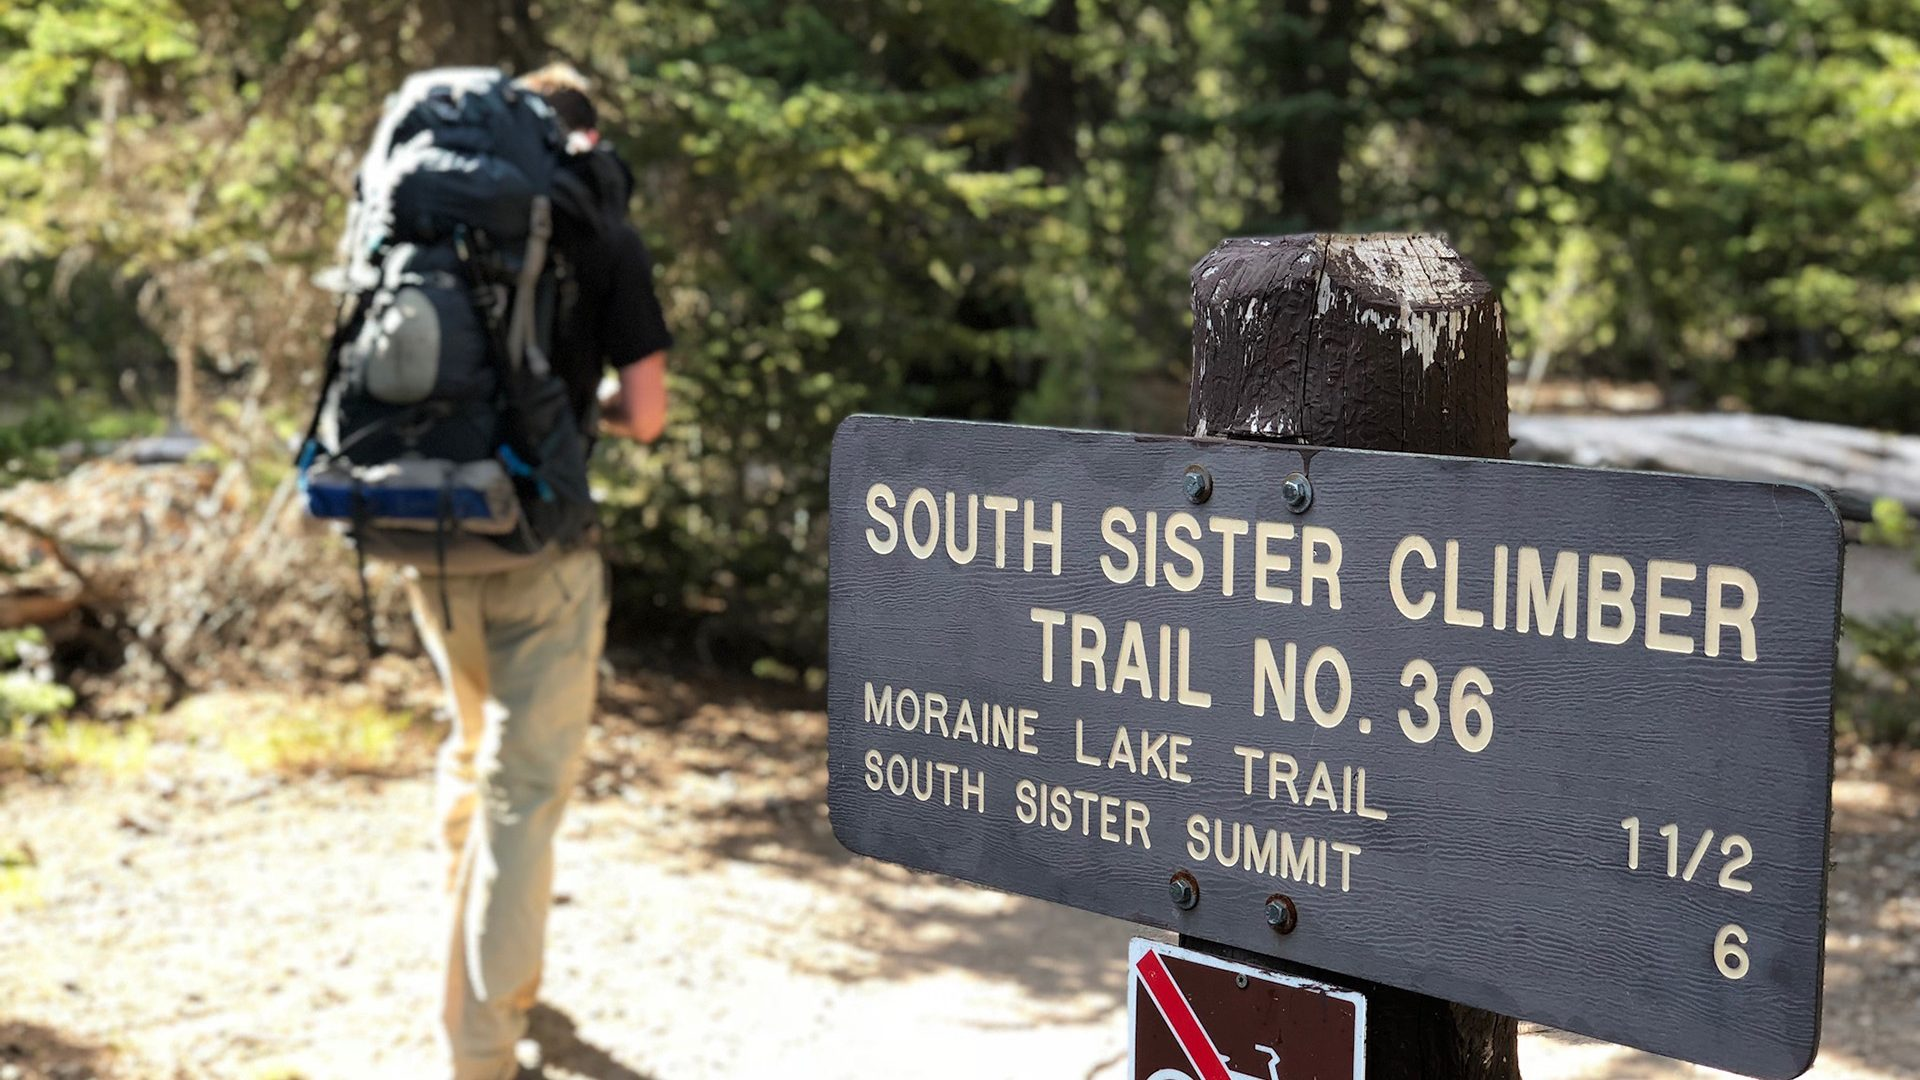 South Sister Climber Trail No. 36 - South Sister, Oregon